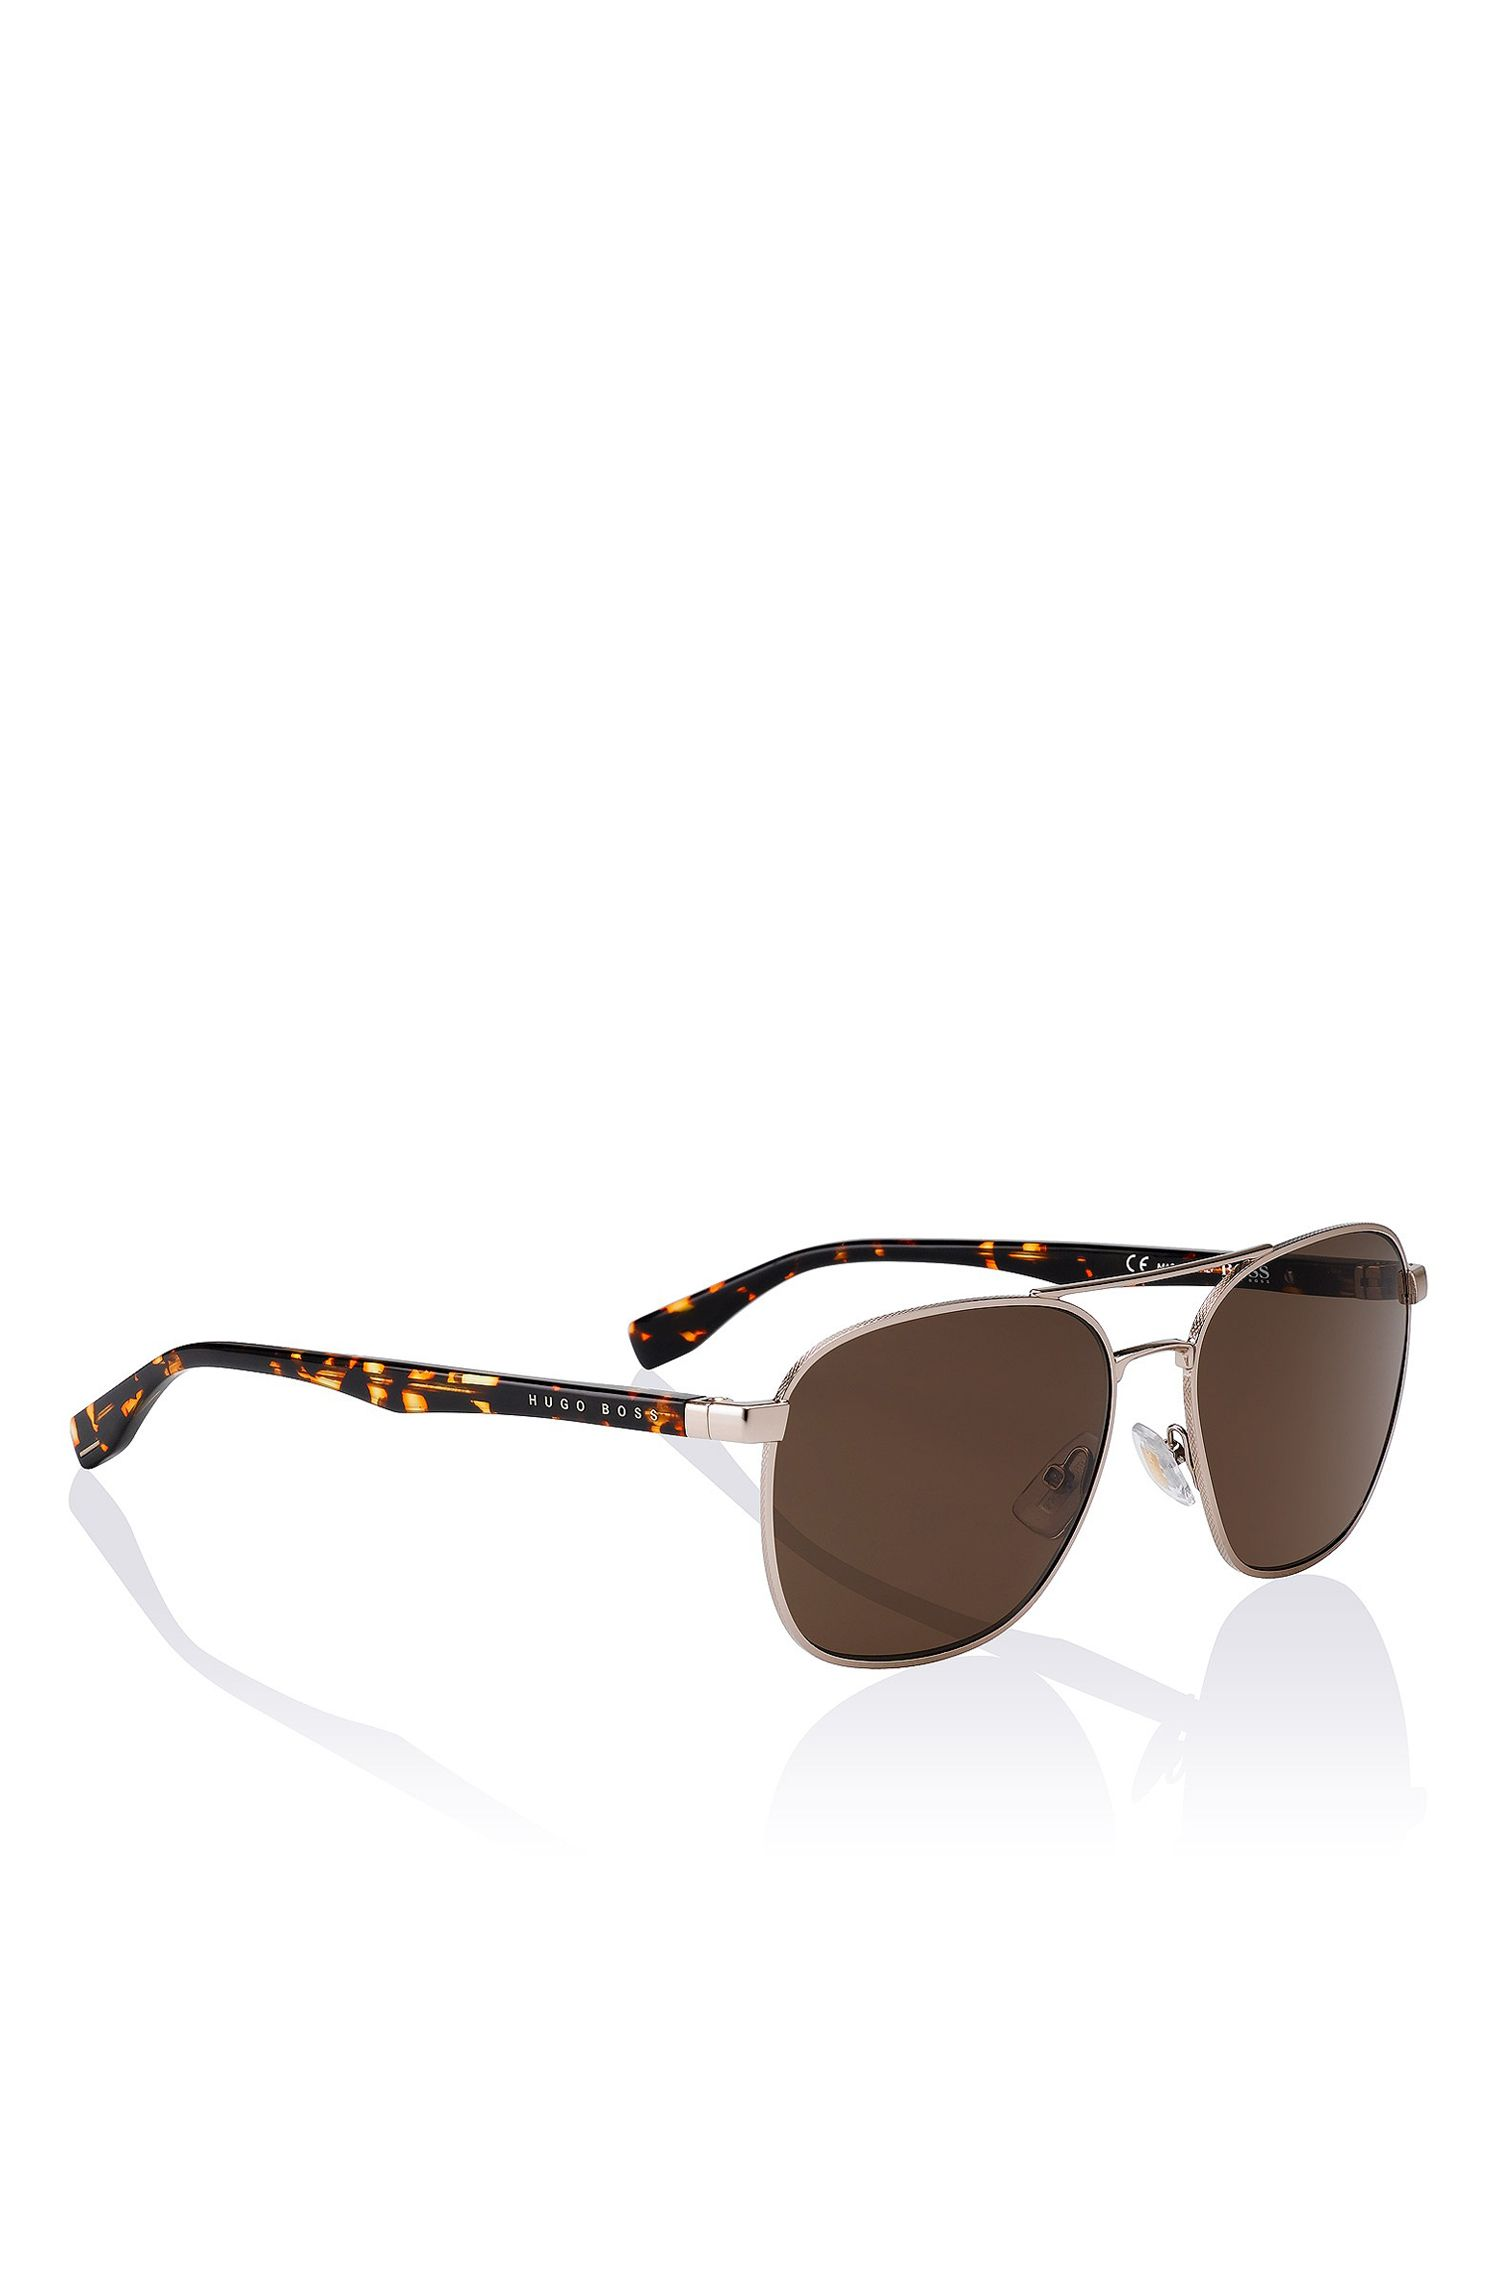 'BOSS 0701S' | Brown Lens Navigator Sunglasses